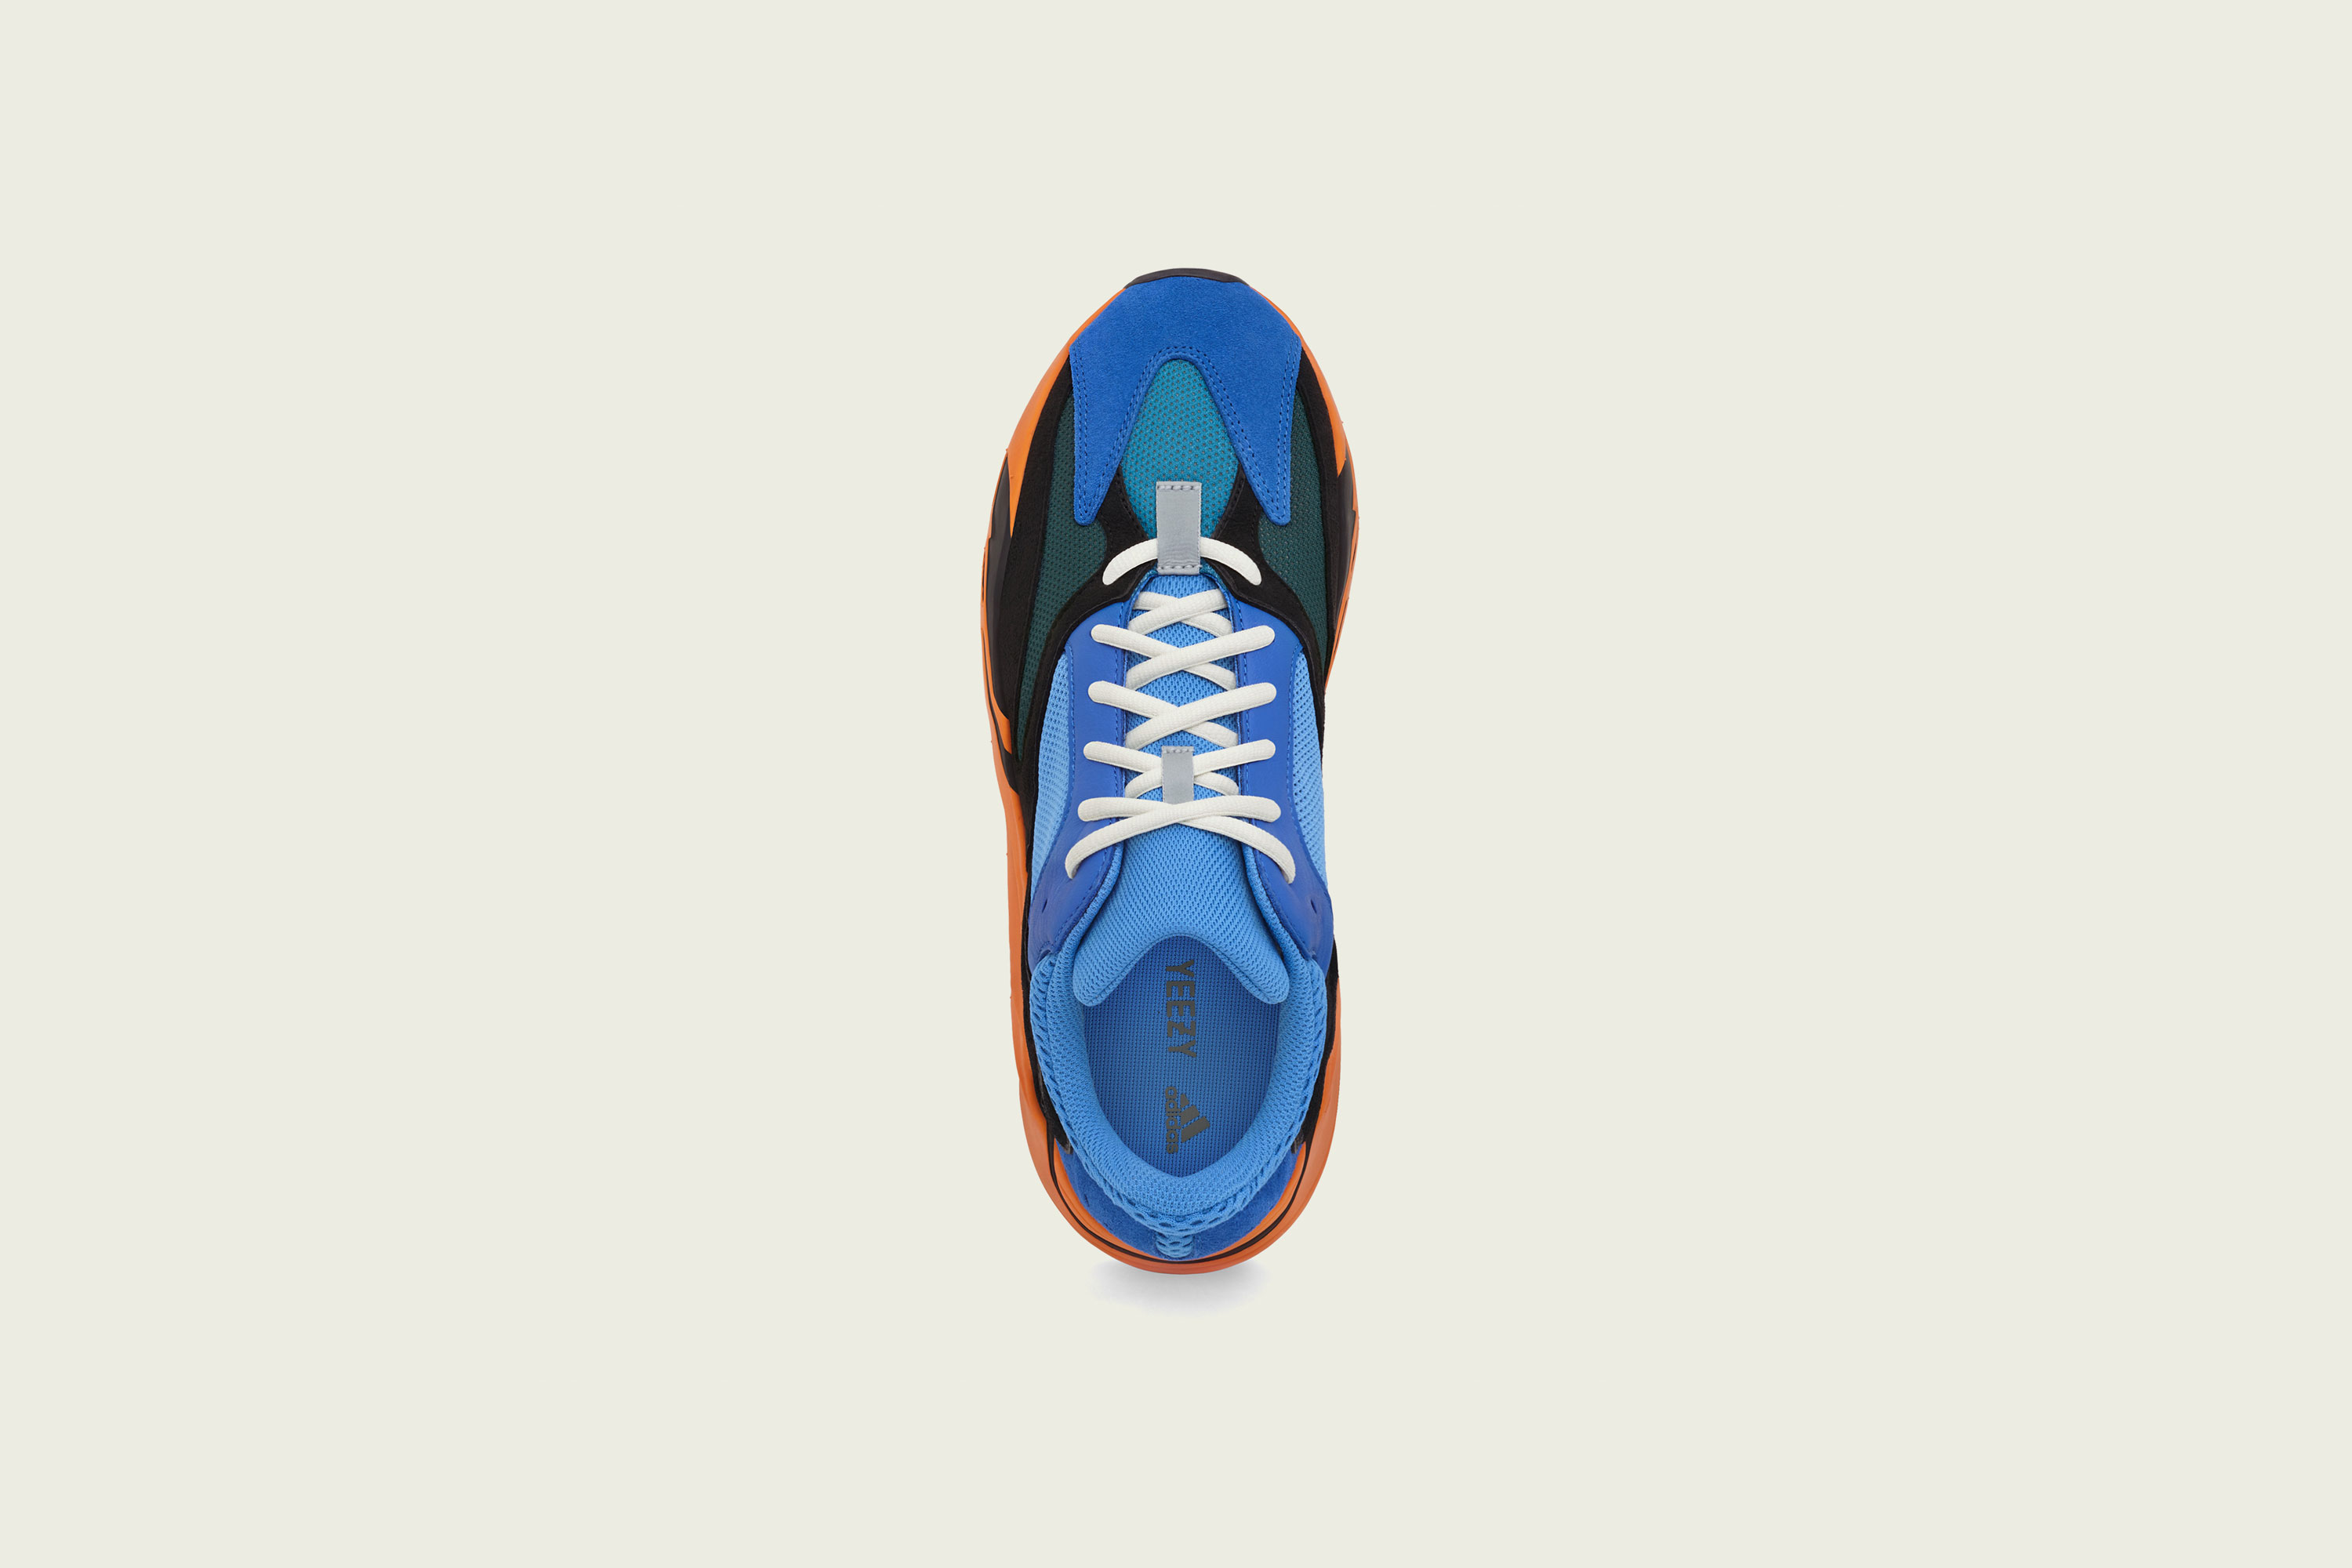 Up There Launches - adidas Originals Kanye West Yeezy Boost 700V1 Bright Blue